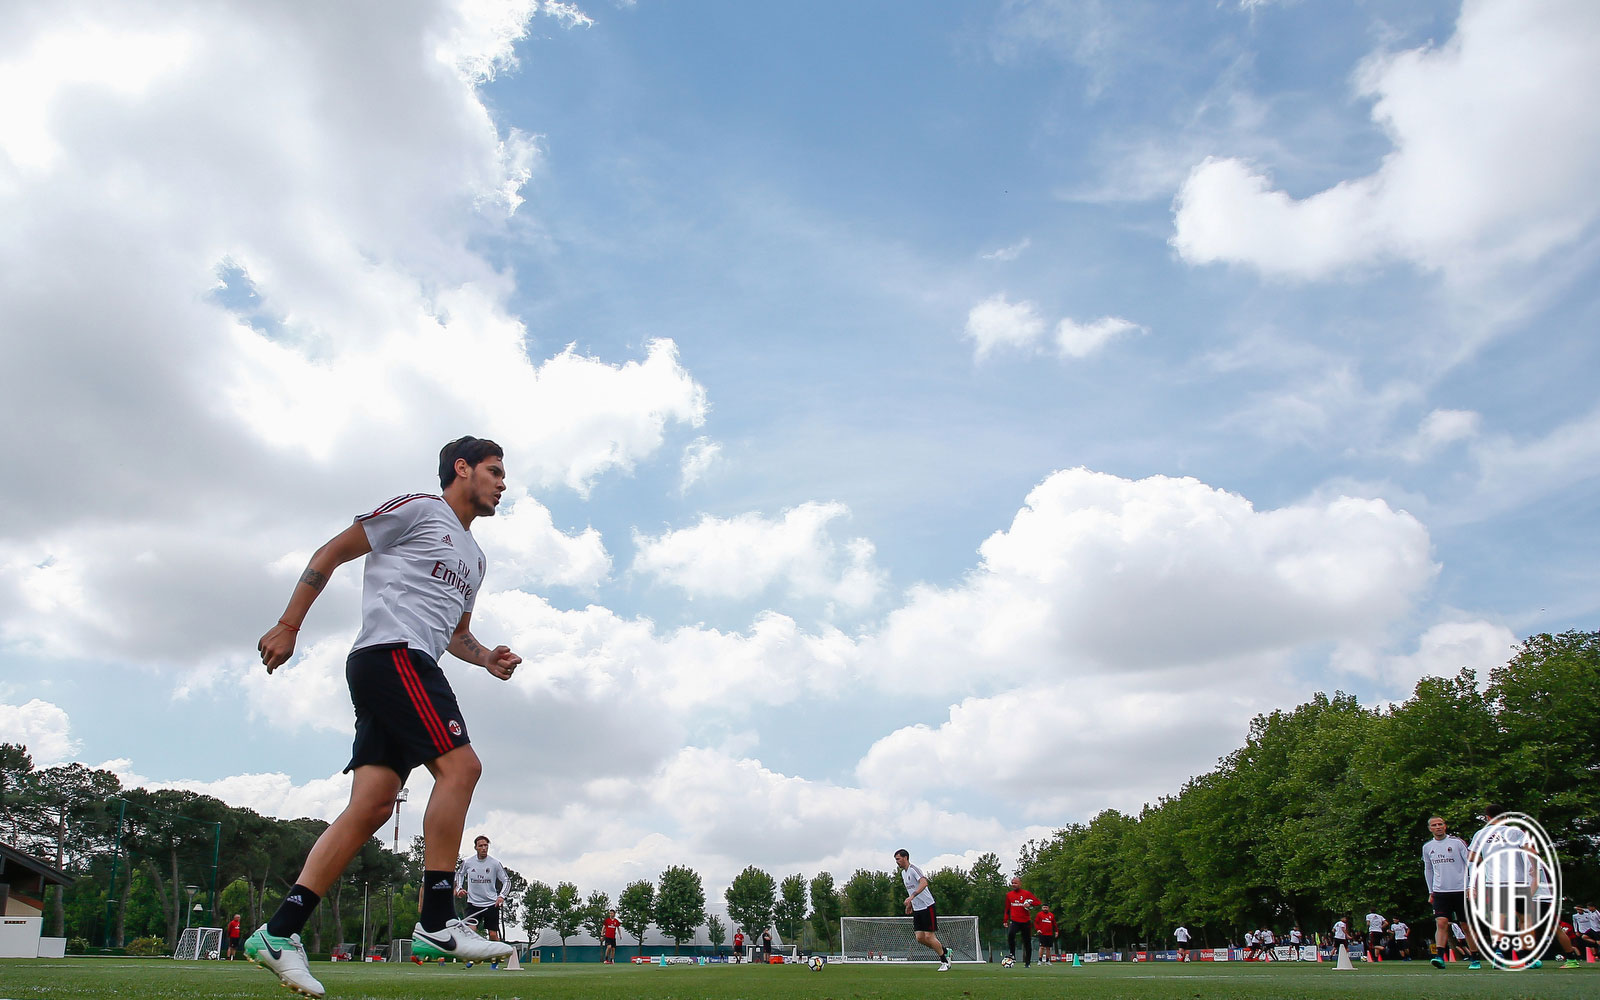 Gustavo Gomez during training at Milanello. (@acmilan.com)